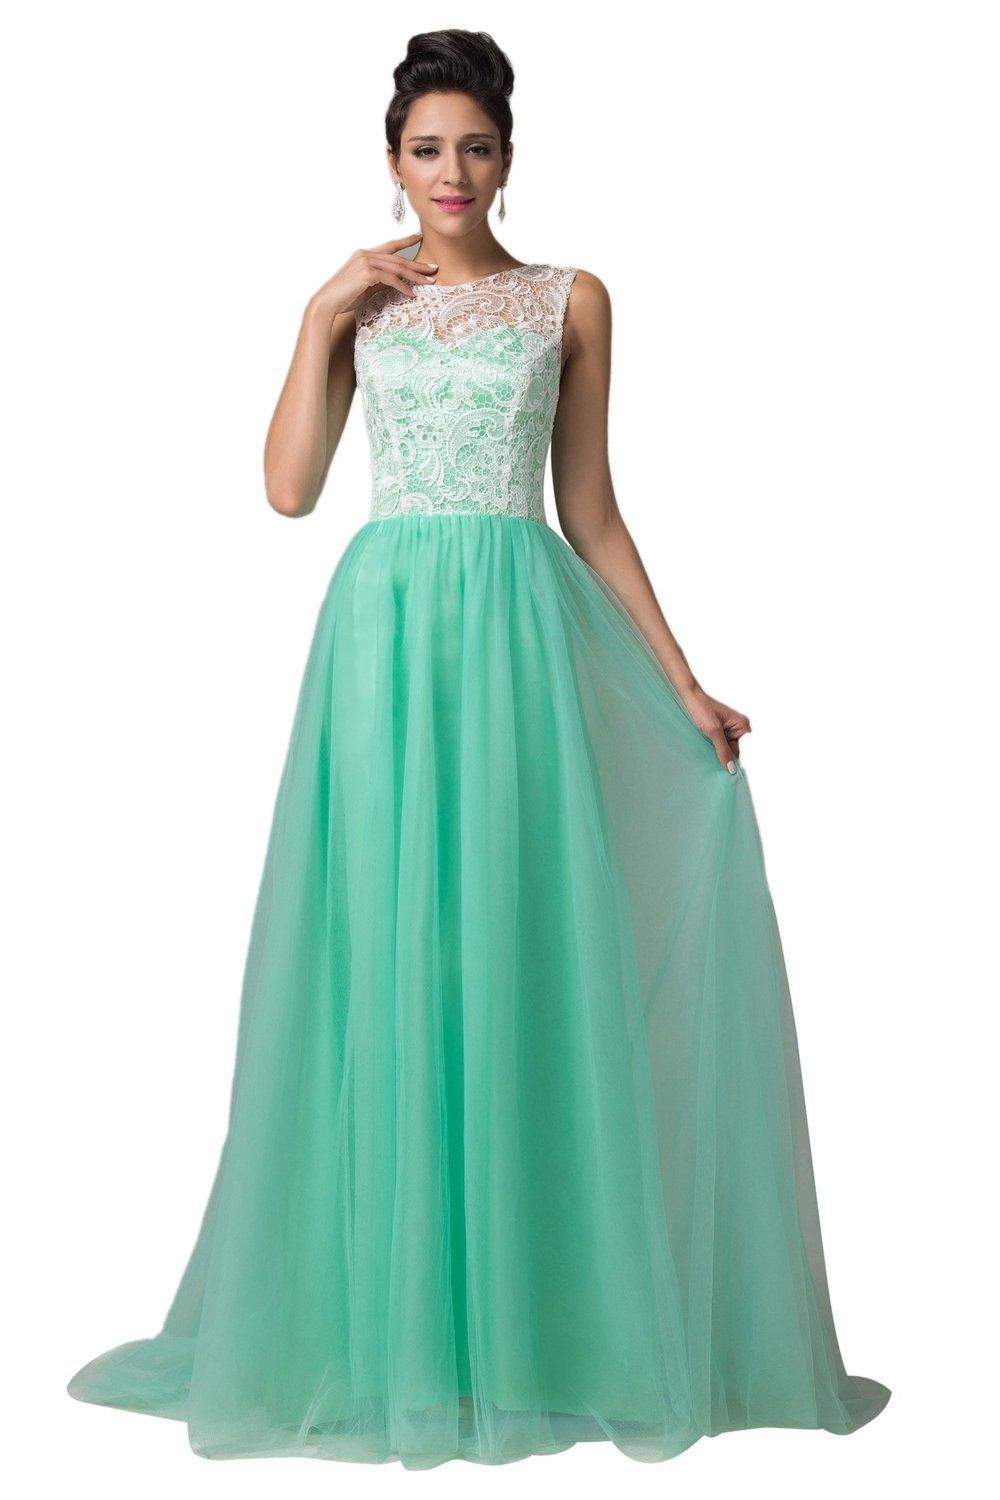 Lea Rosa Women Tulle Dress with Lace CL6108, Green, Size 6: Amazon ...